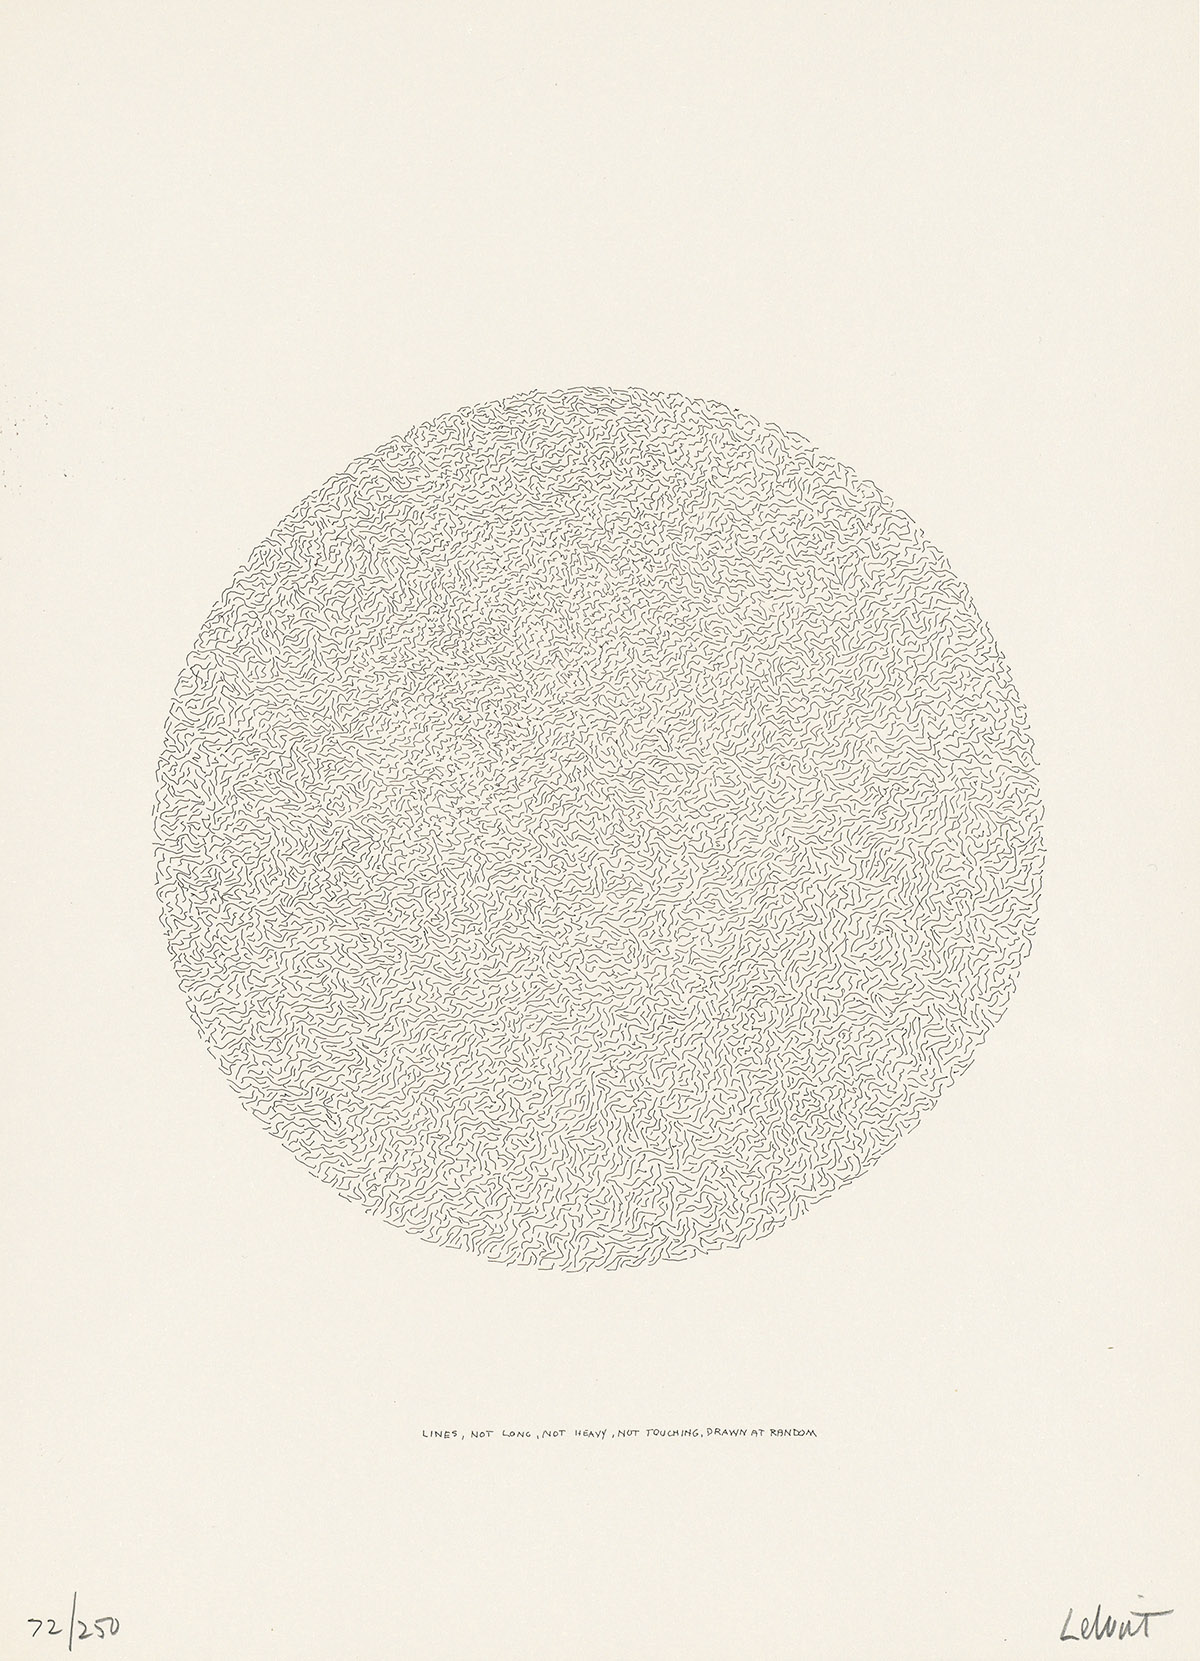 SOL-LEWITT-Lines-Not-Long-Not-Heavy-Not-Touching-Drawn-at-Ra